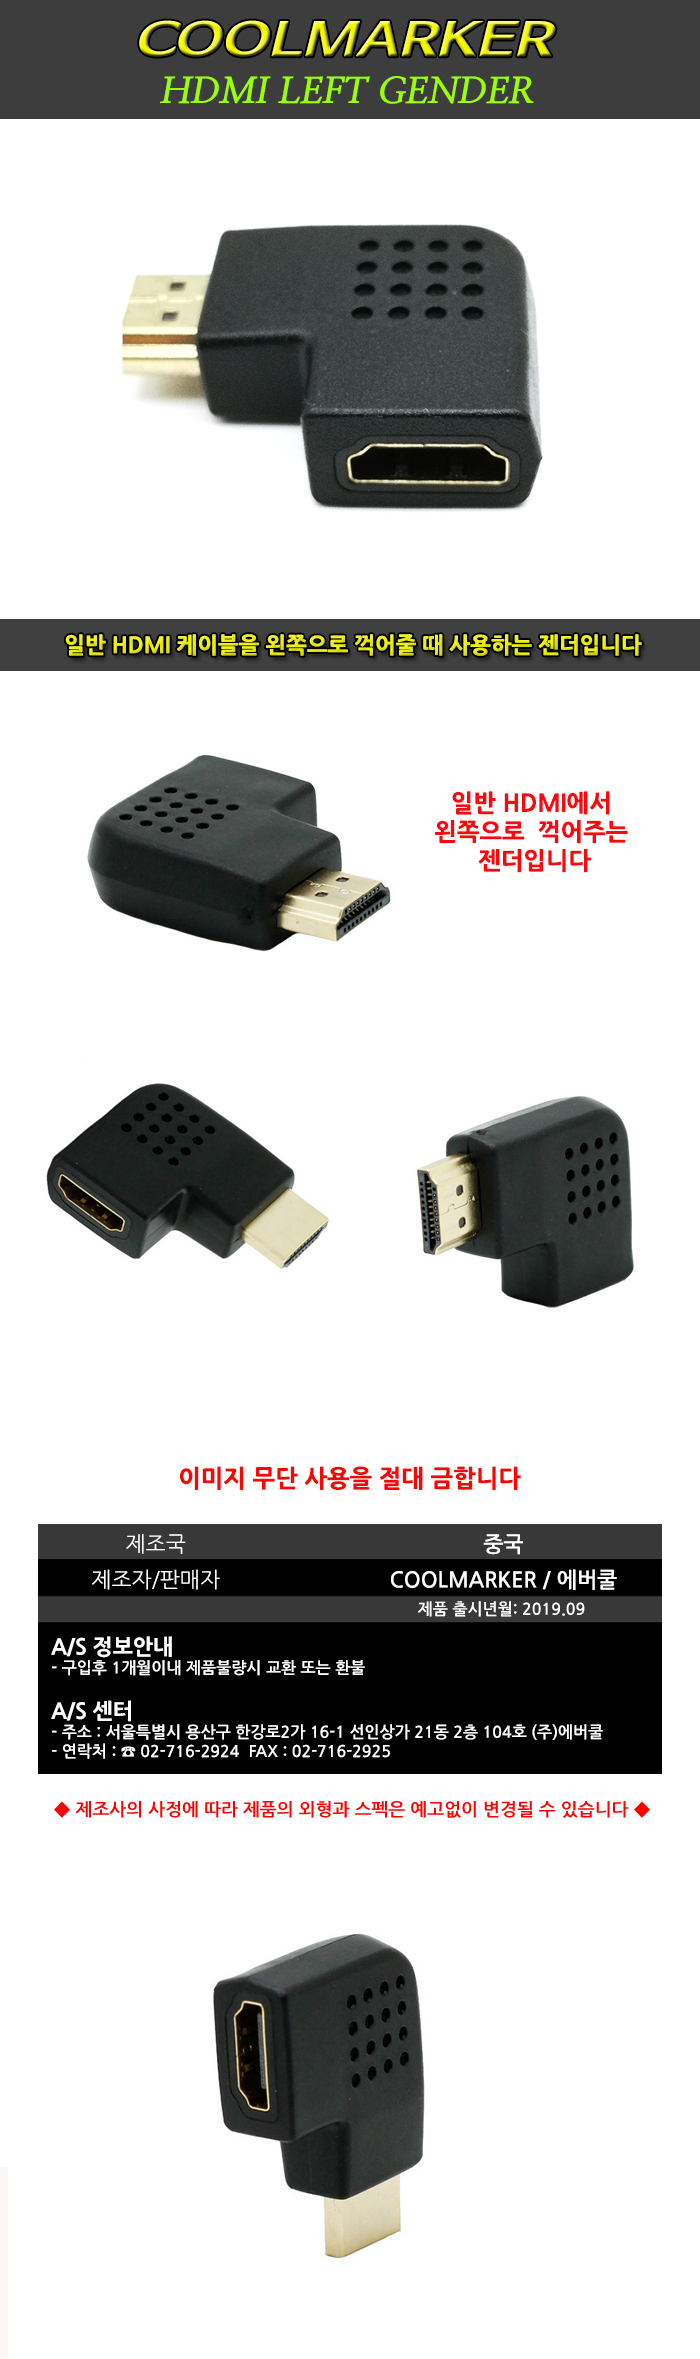 EVERCOOL COOLMARKER HDMI to HDM 왼쪽꺾임 젠더 (HDMILEFT)